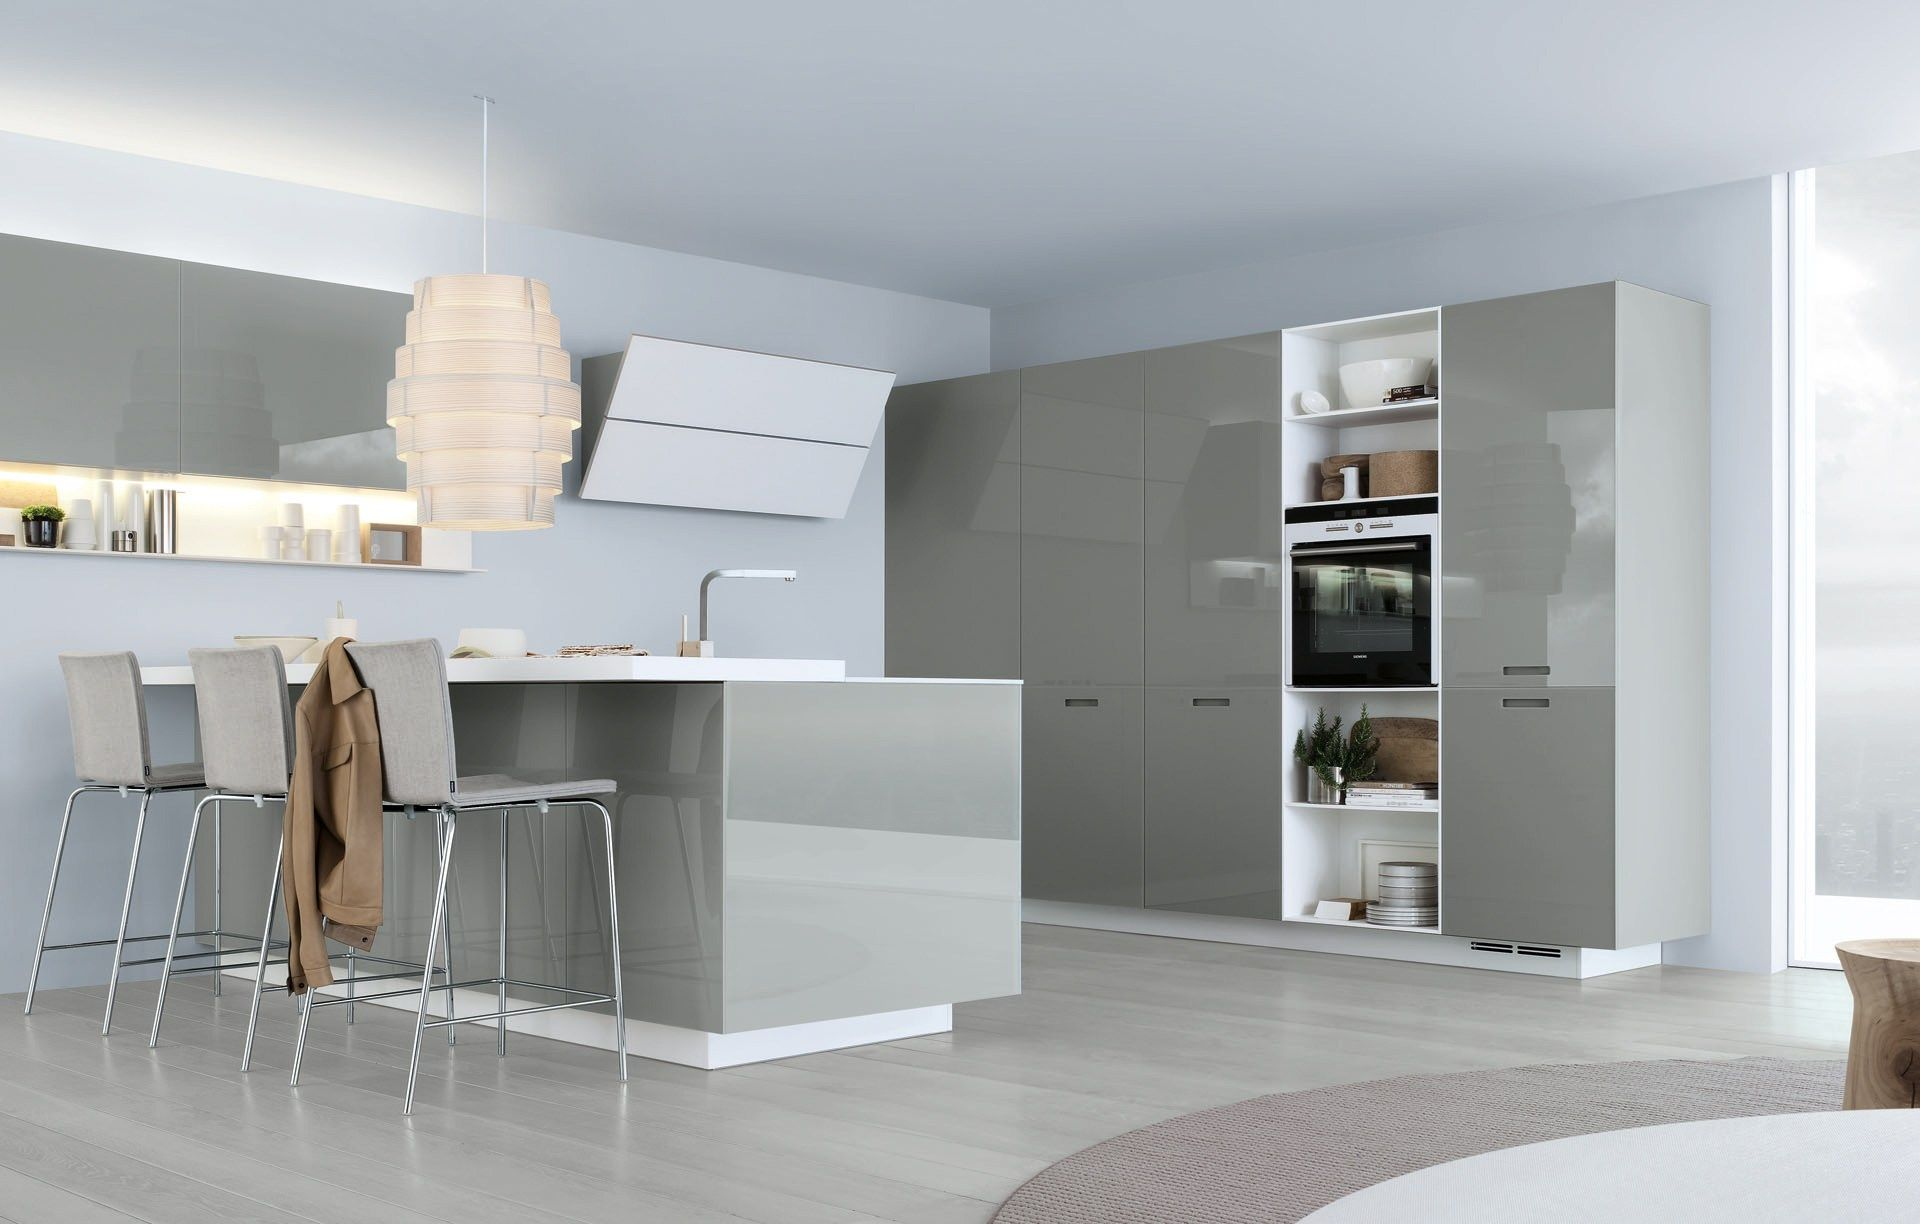 Lacquered linear wooden kitchen KYTON by Varenna by Poliform